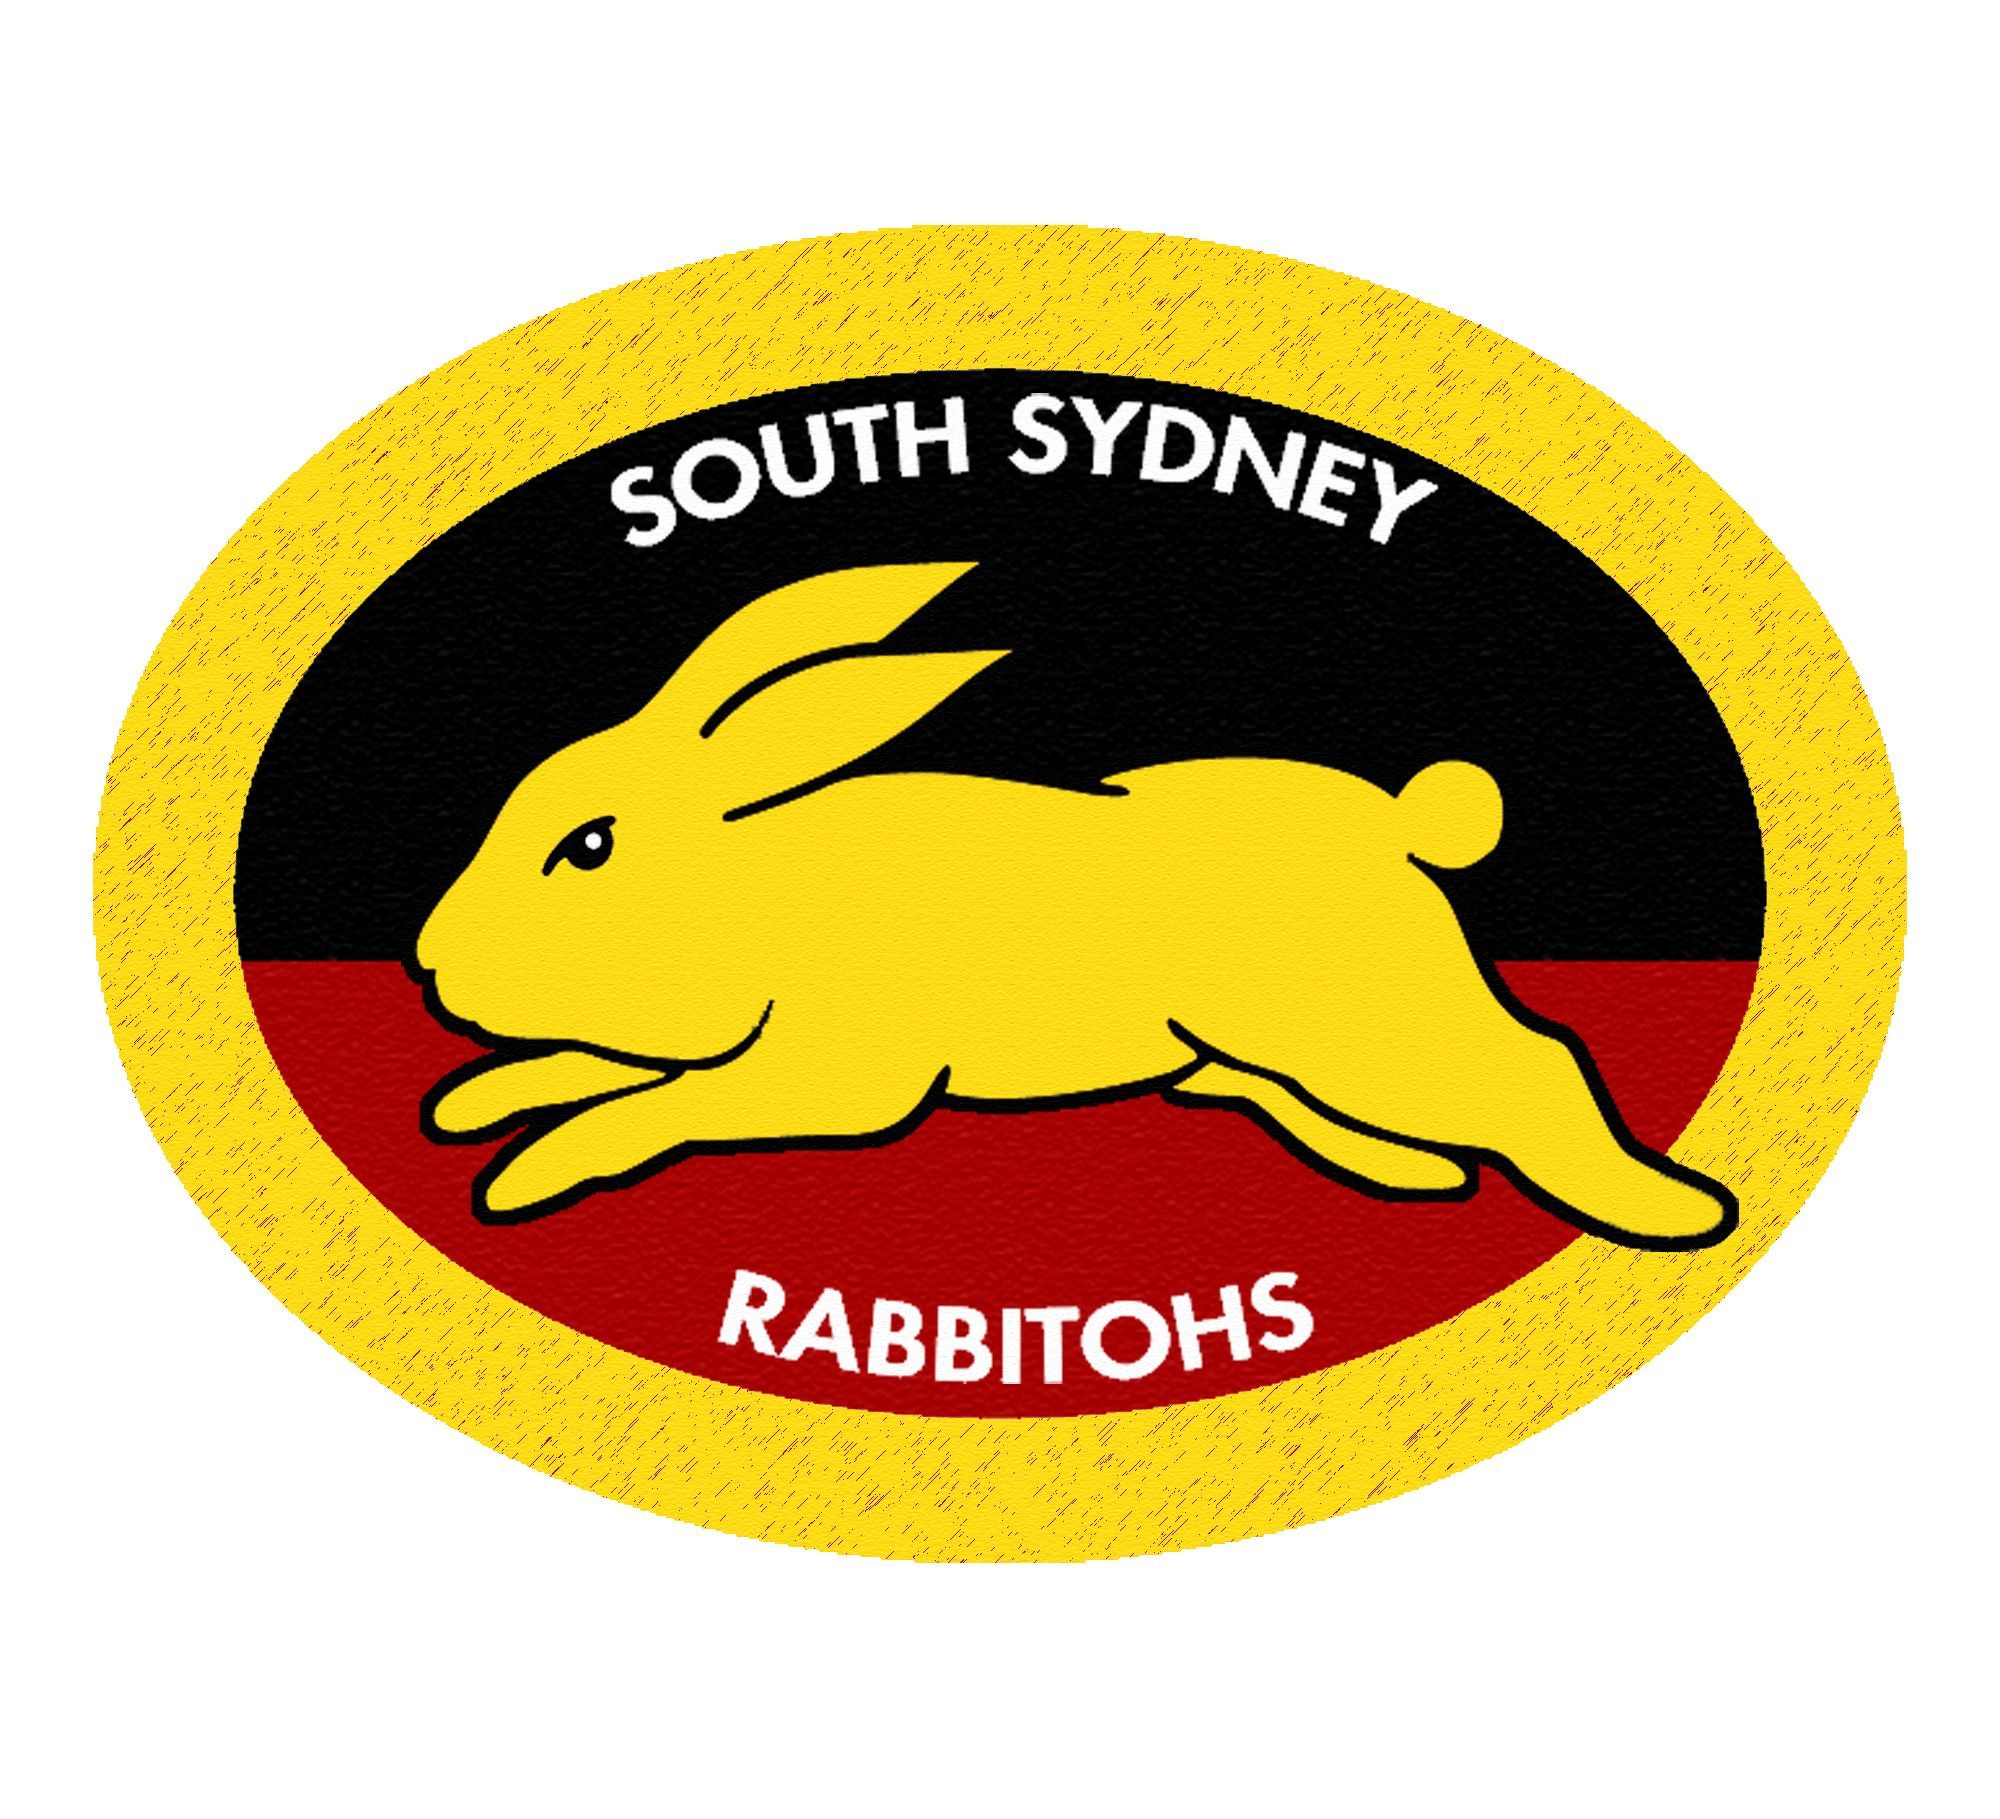 South Sydney Rabbitohs Aboriginal Logo By Sunnyboiiii Australian Rugby League National Rugby League Rugby League